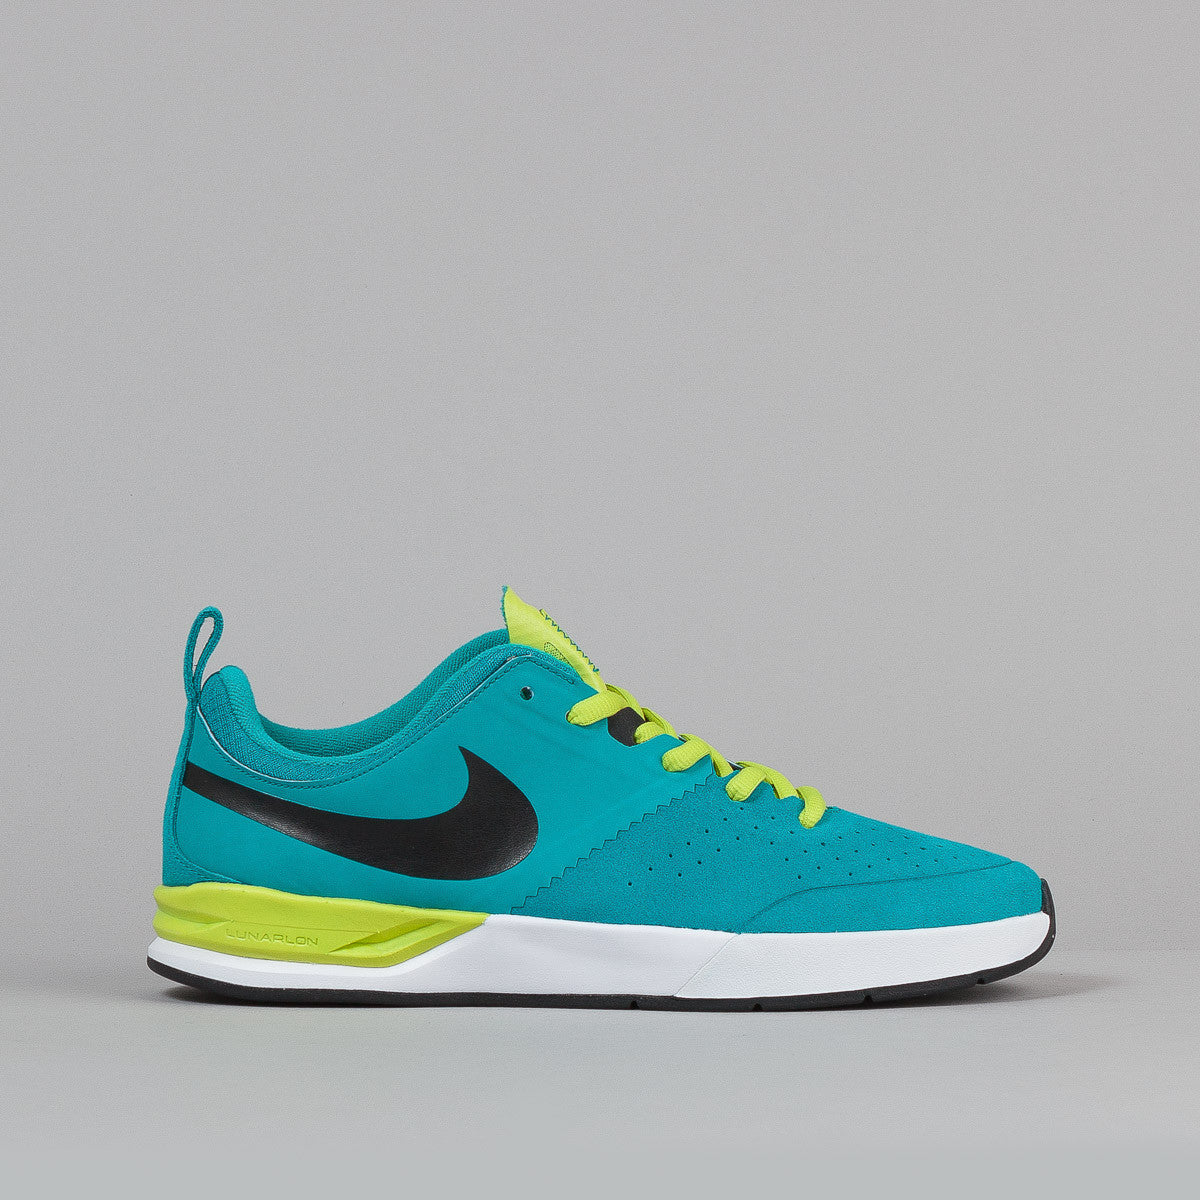 Nike SB Project BA Turbo Green / White